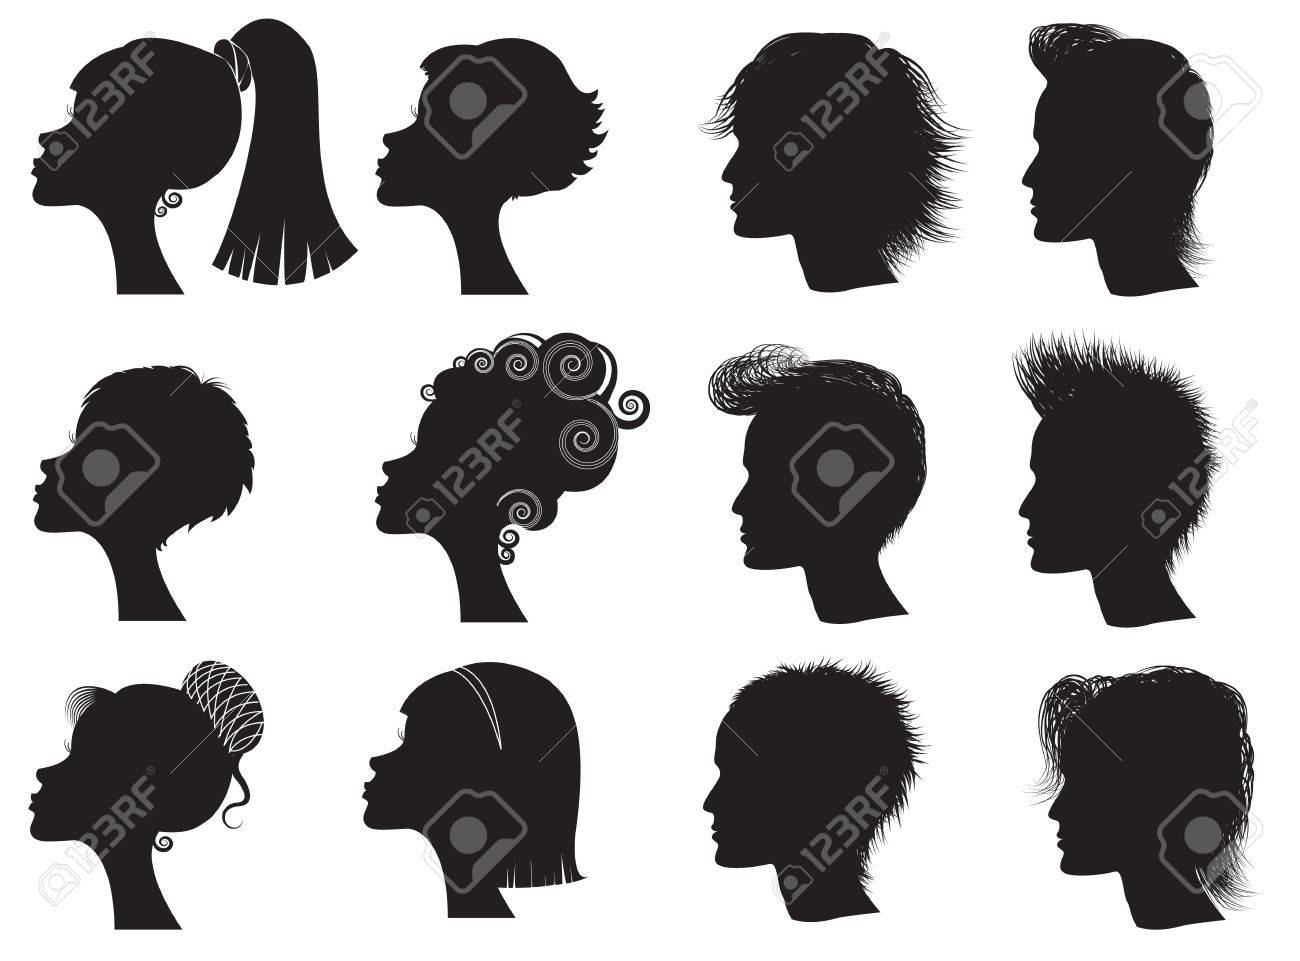 hairstyles - vector black silhouettes of men and women royalty